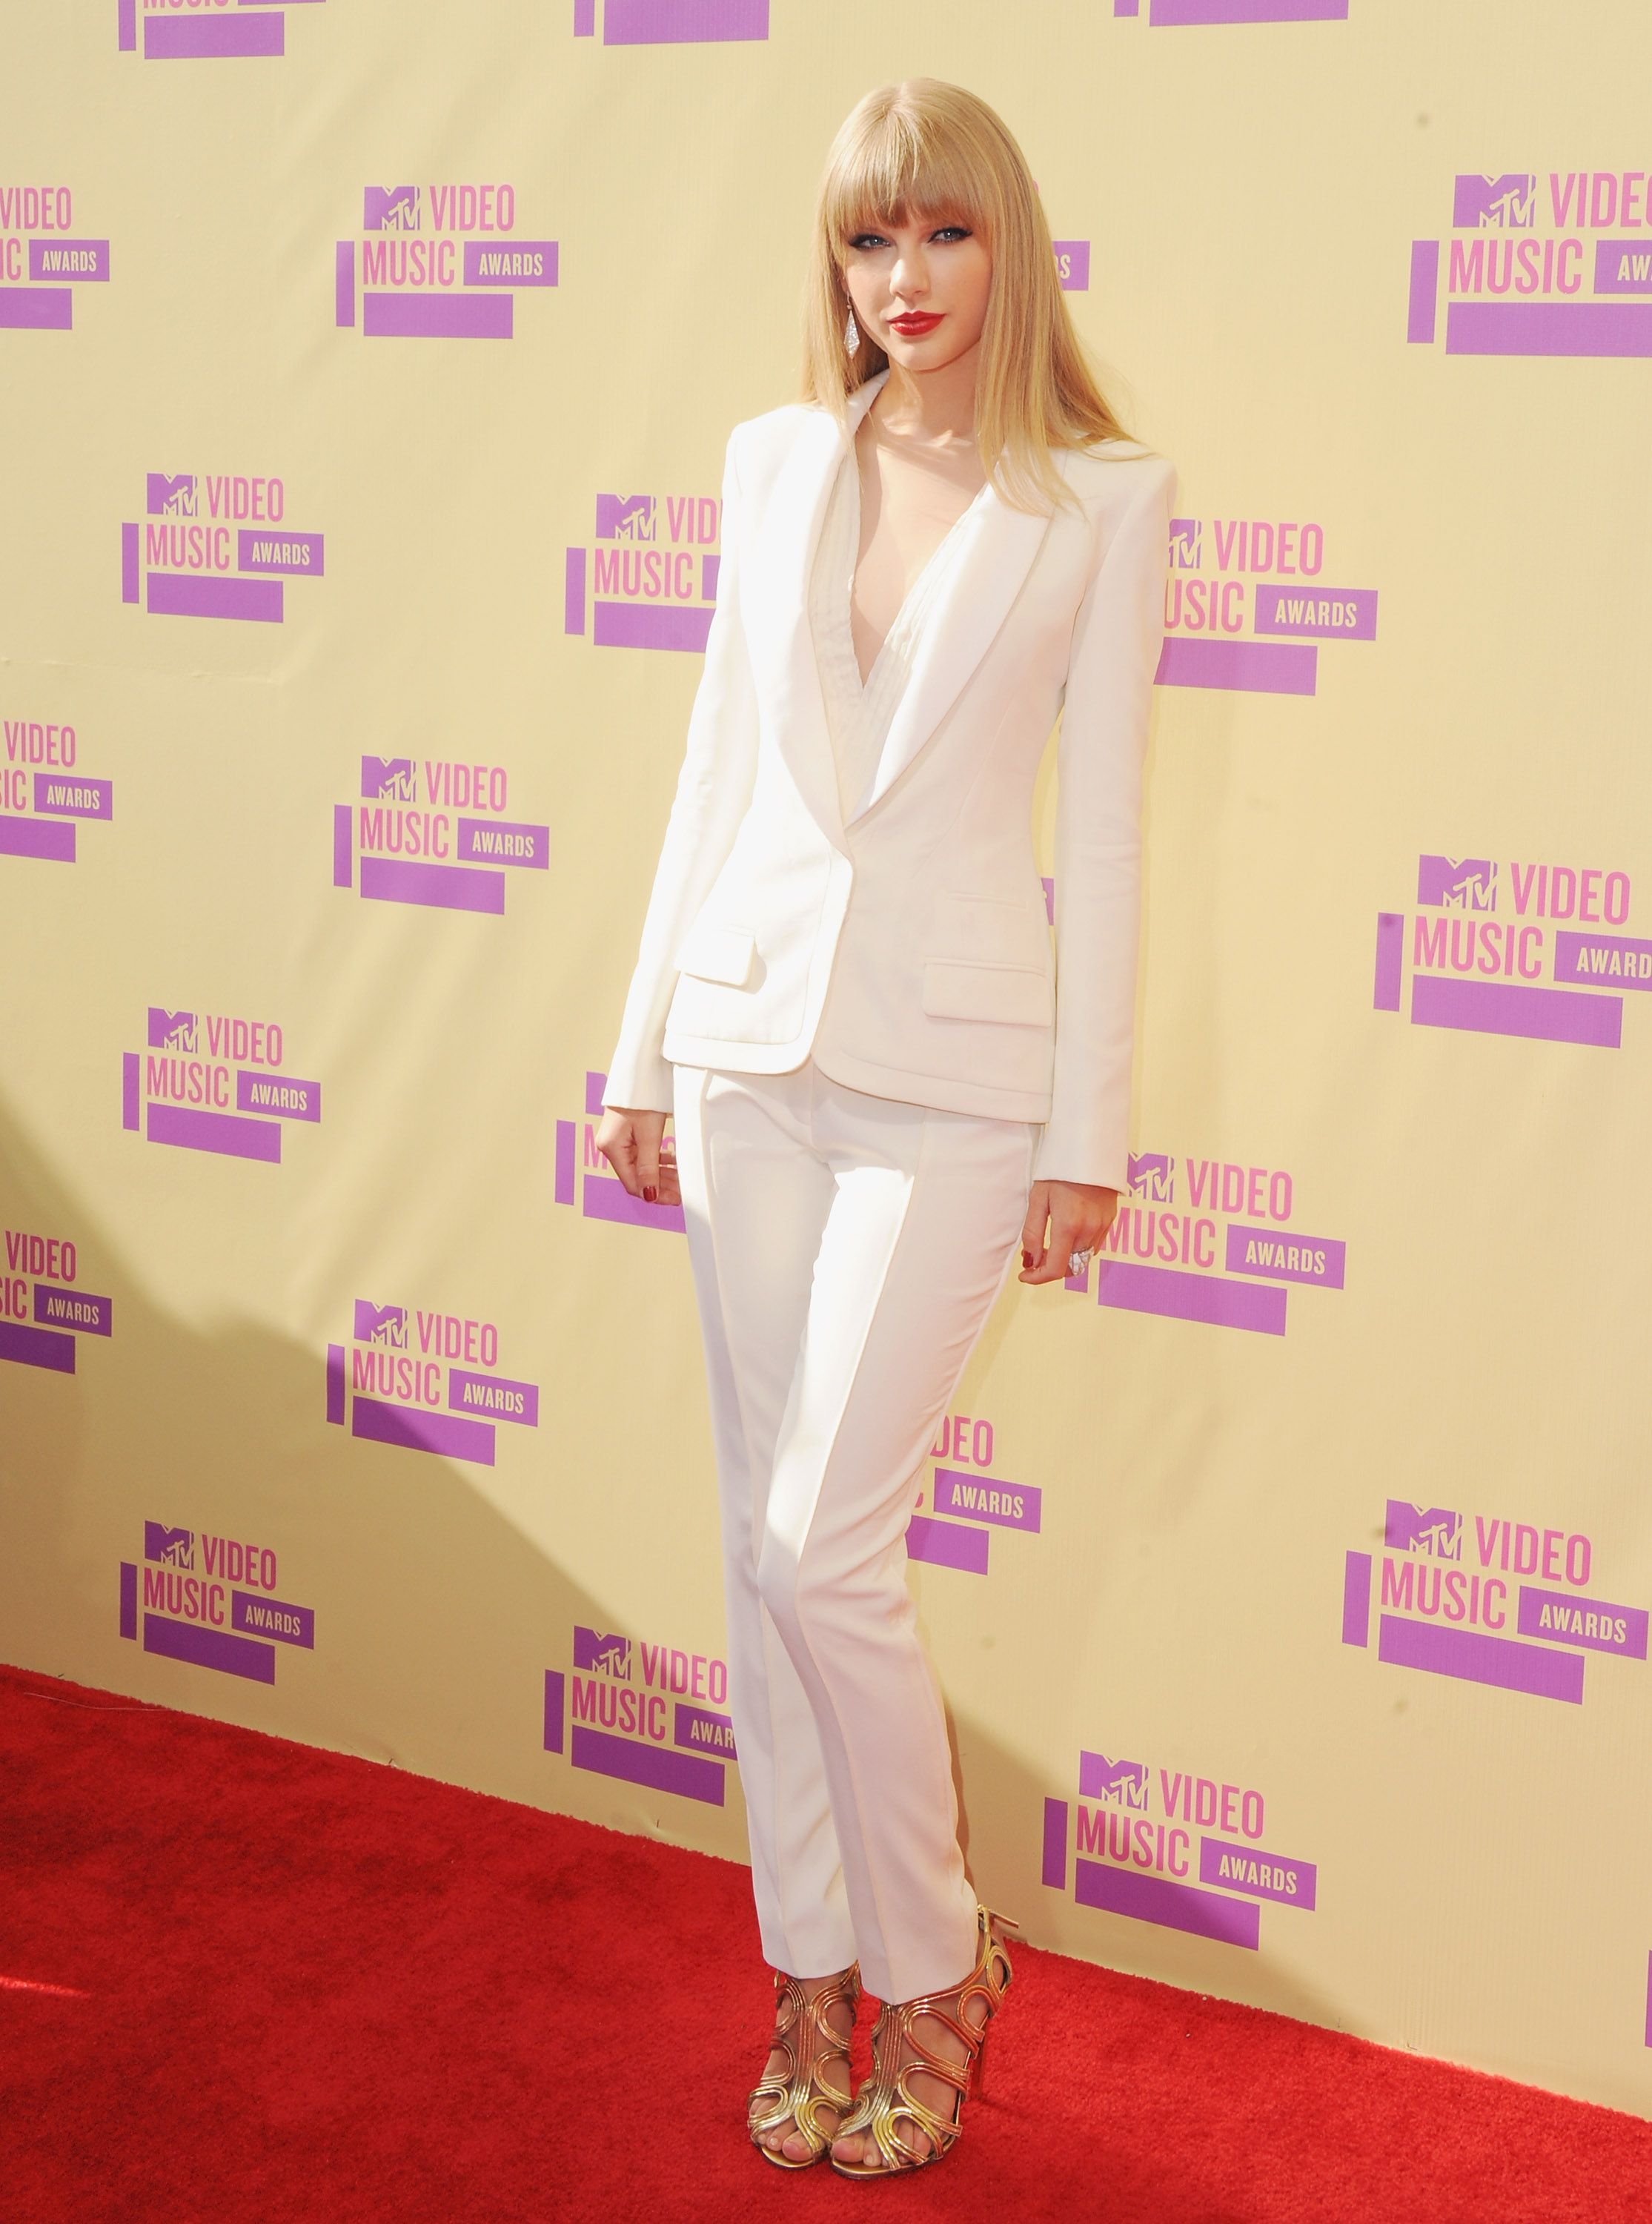 Taylor Swift on the Red Carpet at the MTV Video Music Awards #TaylorSwift #MTV #VMAinsider